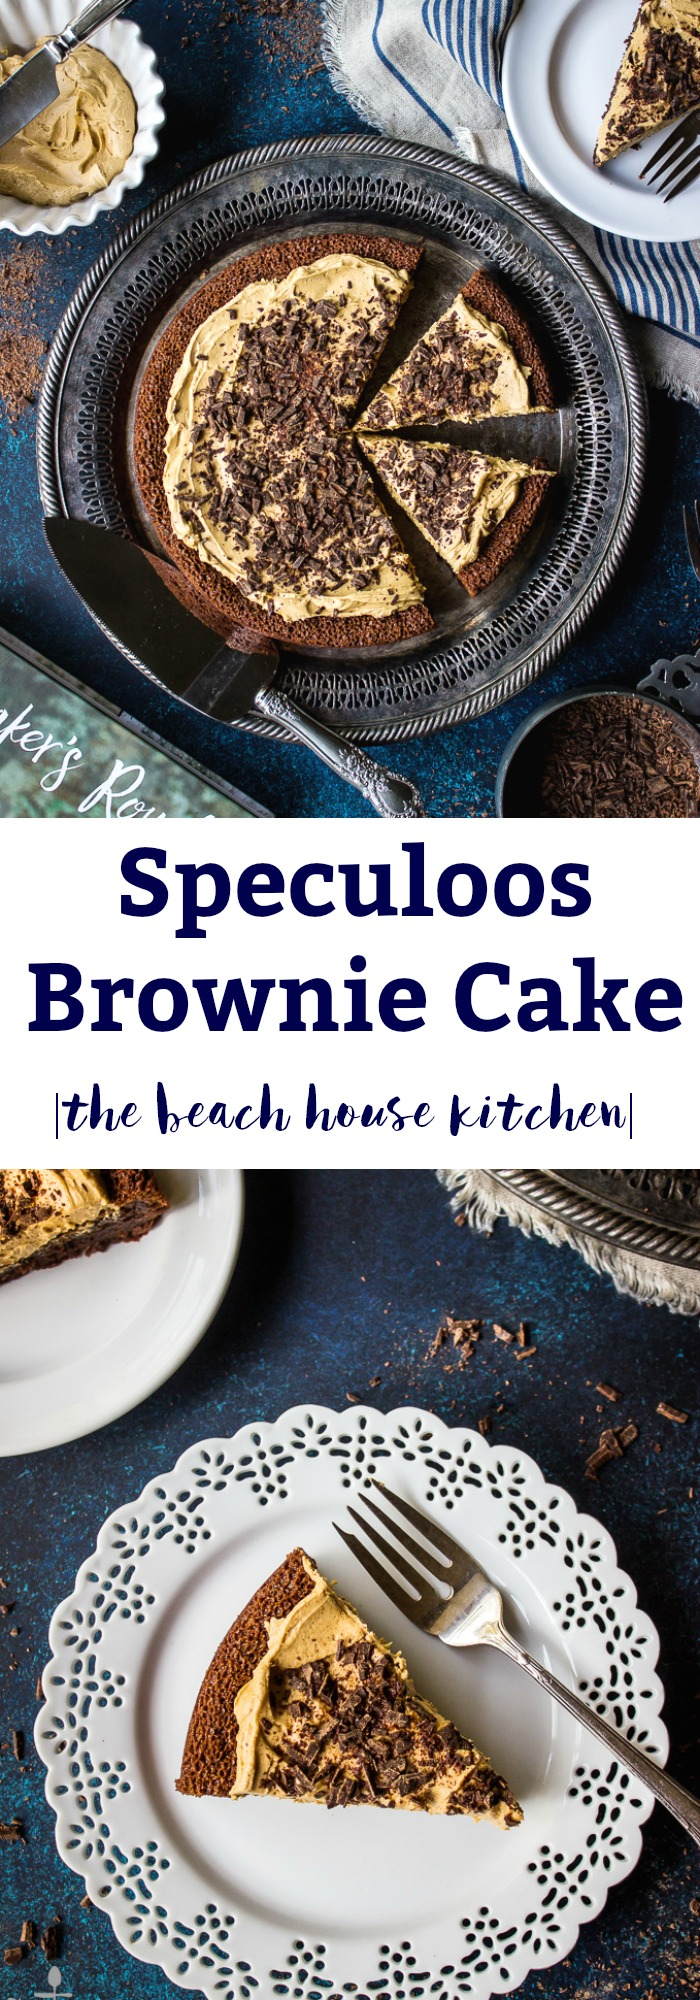 Speculoos Brownie Cake